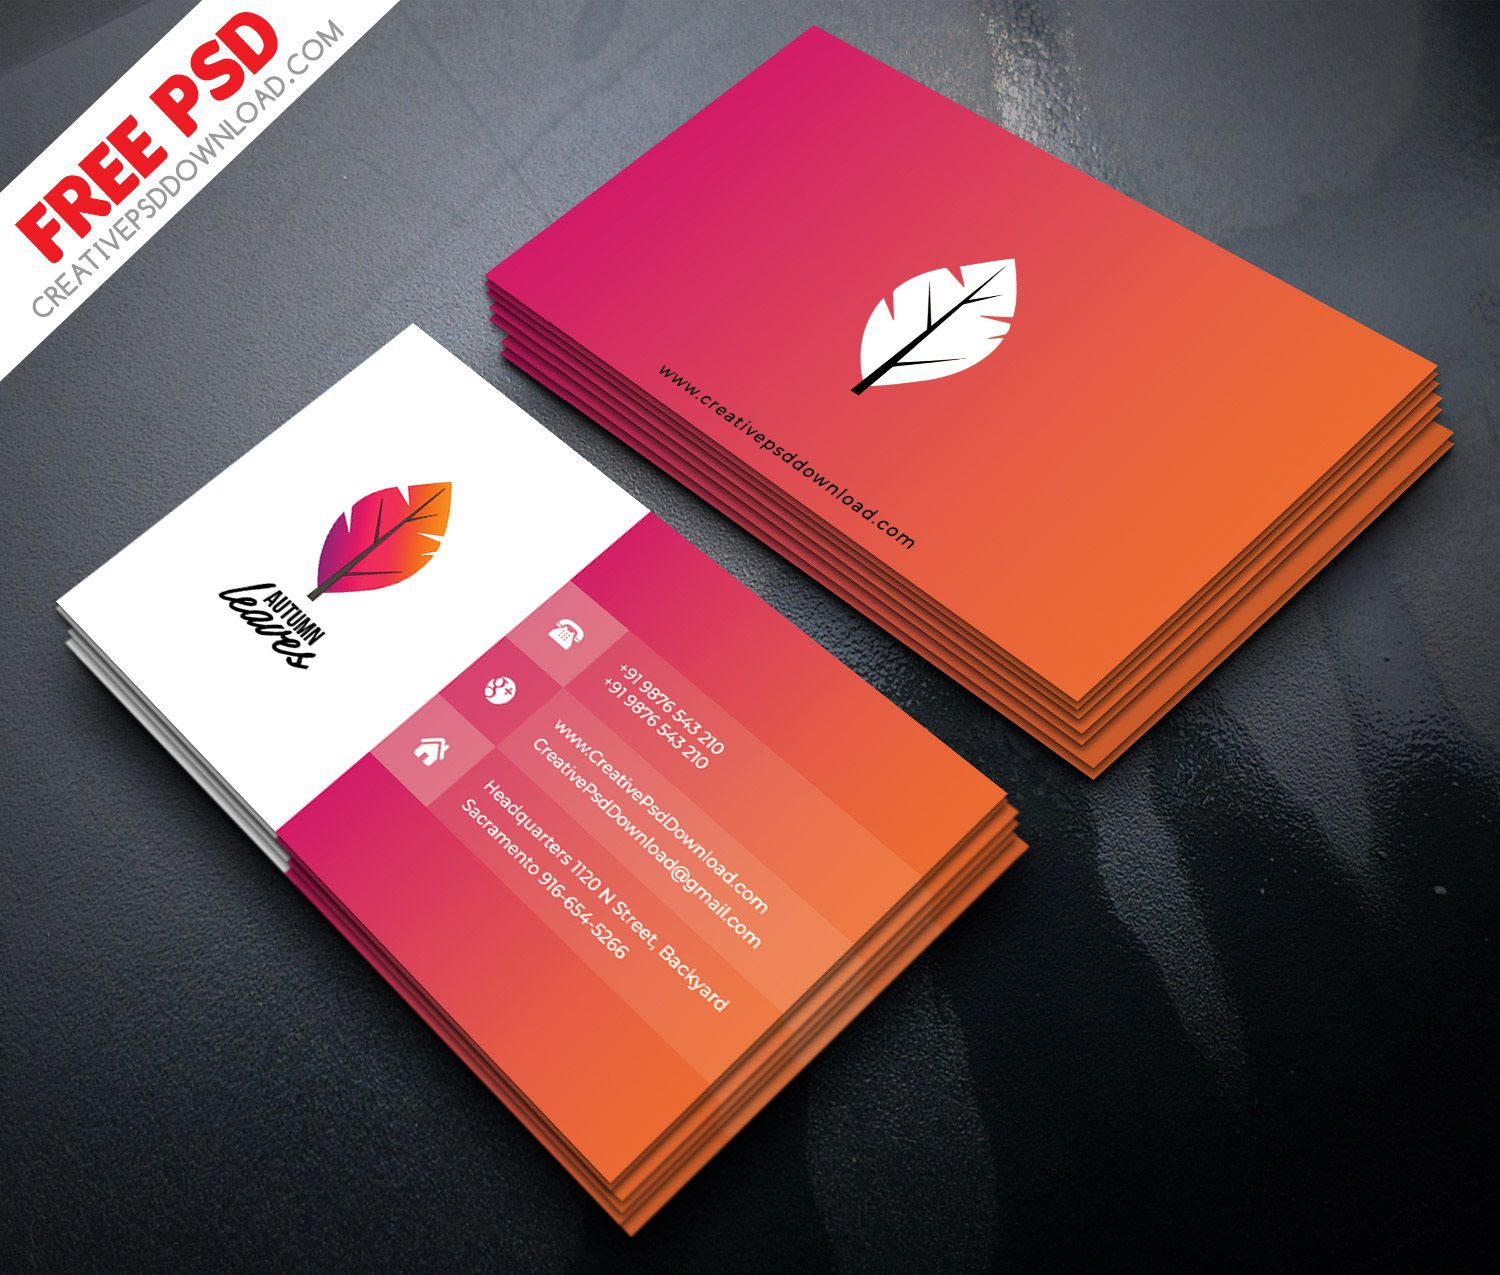 008 Shocking Free Adobe Photoshop Busines Card Template Inspiration  Templates DownloadFull